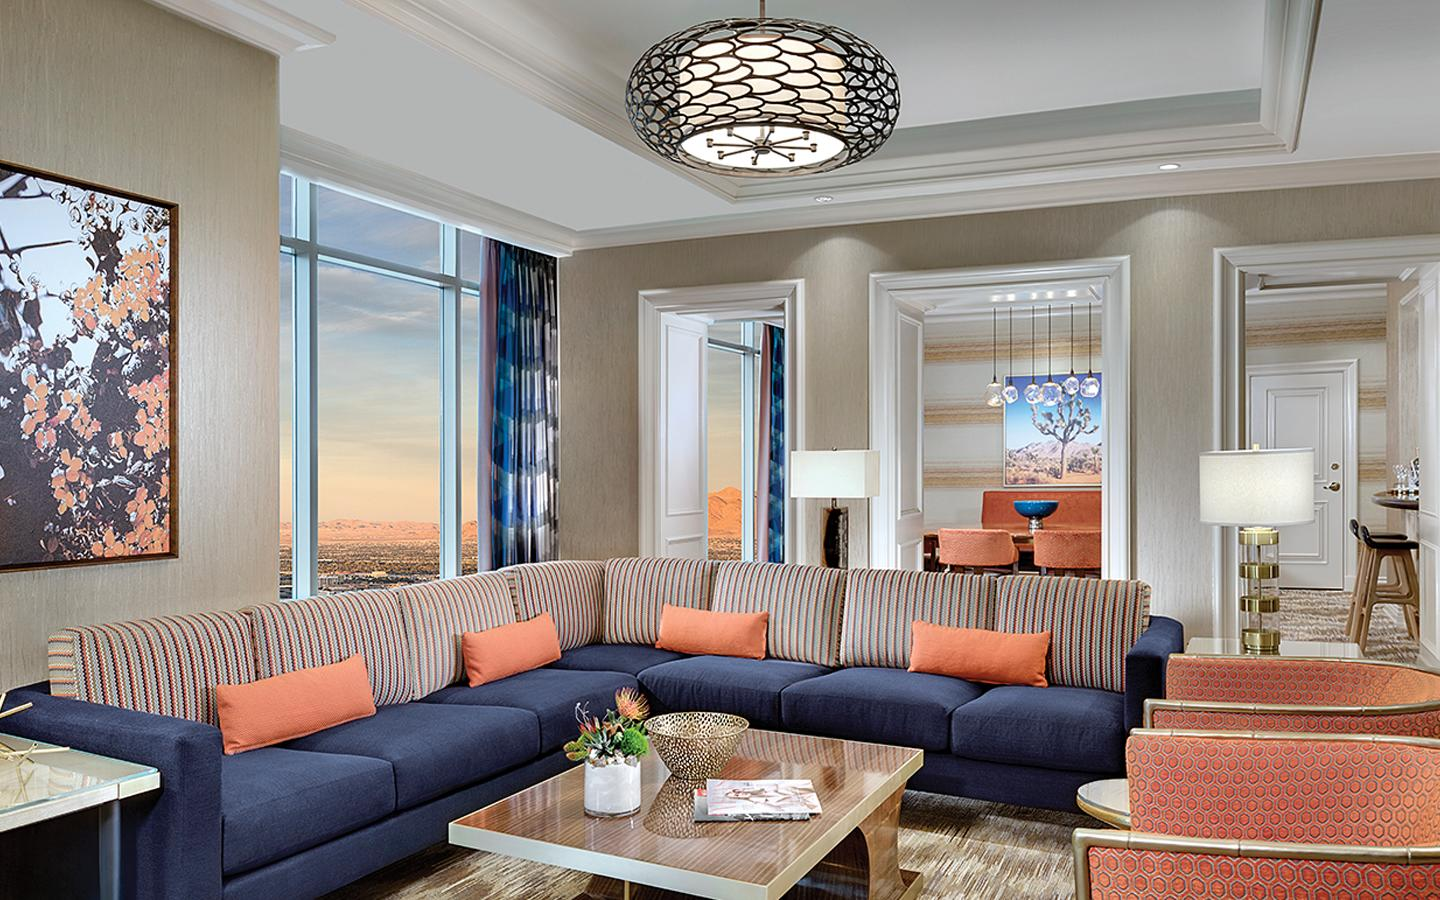 Living Room seating area in the Reef Suite at Mandalay Bay.